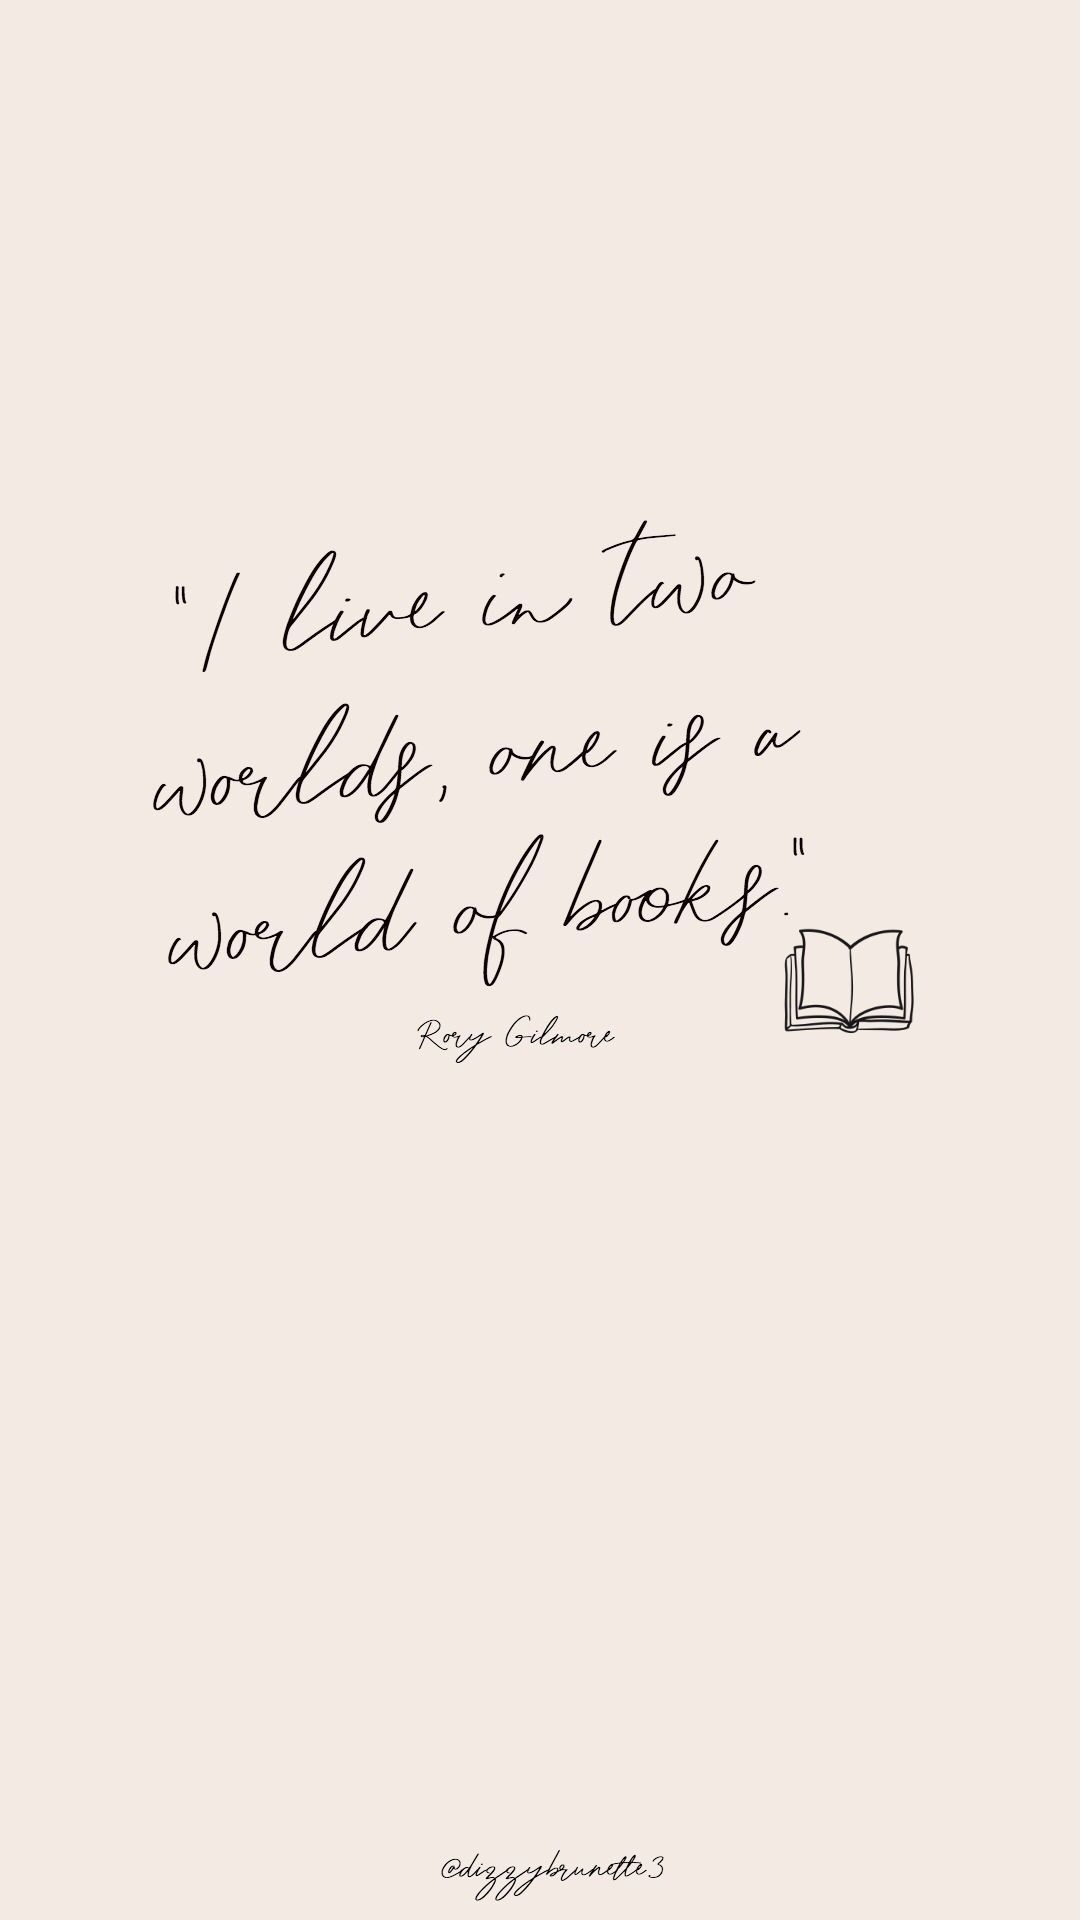 Pin By Katrina Stroud On I Love Reading Free Phone Wallpaper Inspirational Phone Wallpaper Phone Wallpaper Quotes